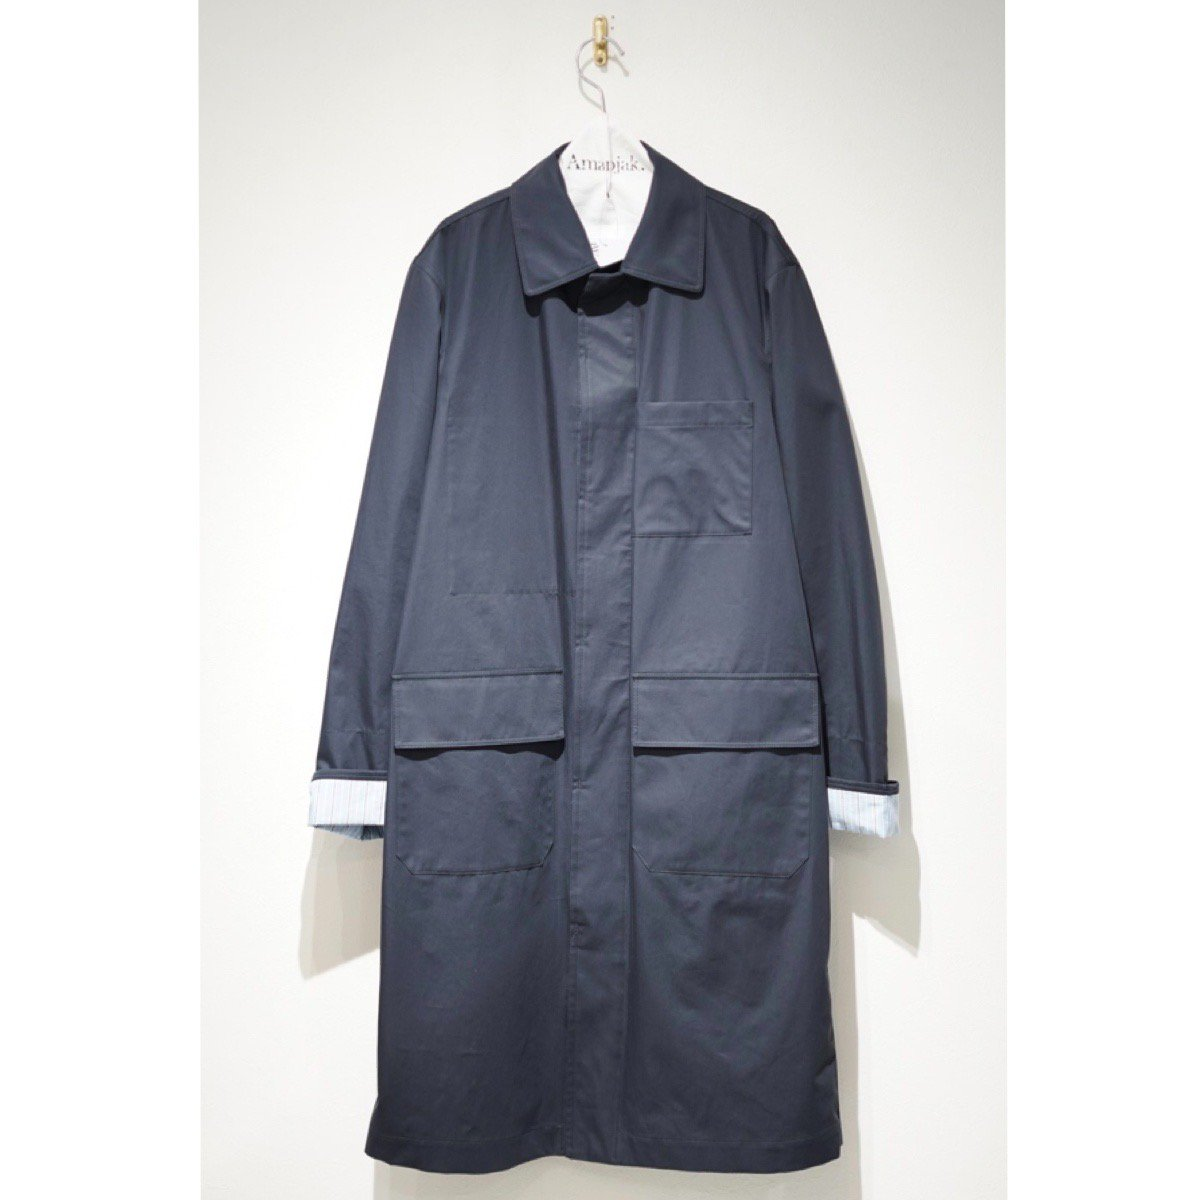 JW ANDERSON-MID LENGTH WORKWEAR COAT